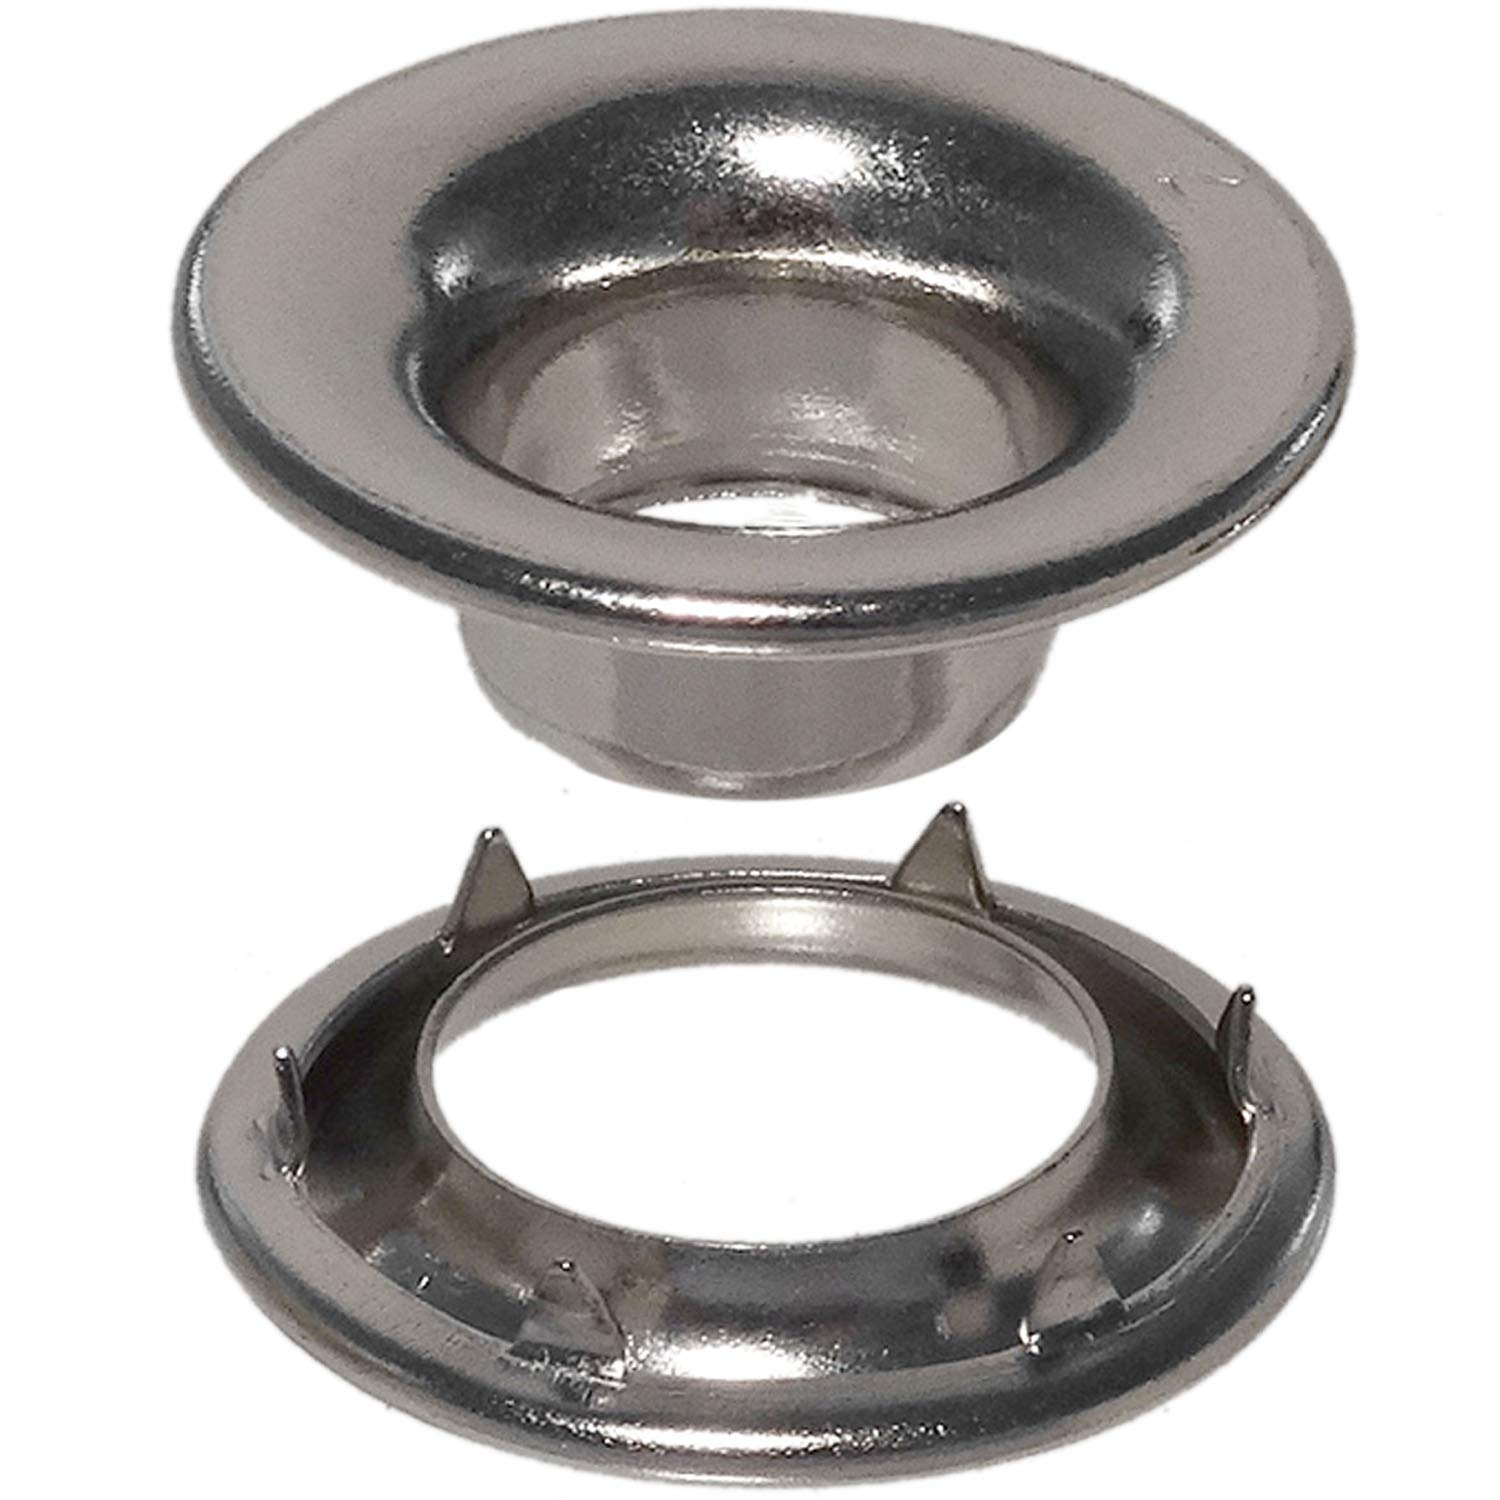 Stimpson Stainless Steel Rolled Rim Grommet and Spur Washer 304 Reliable, Durable, Heavy-Duty #2 Set E-Series (500 Pieces of Each)